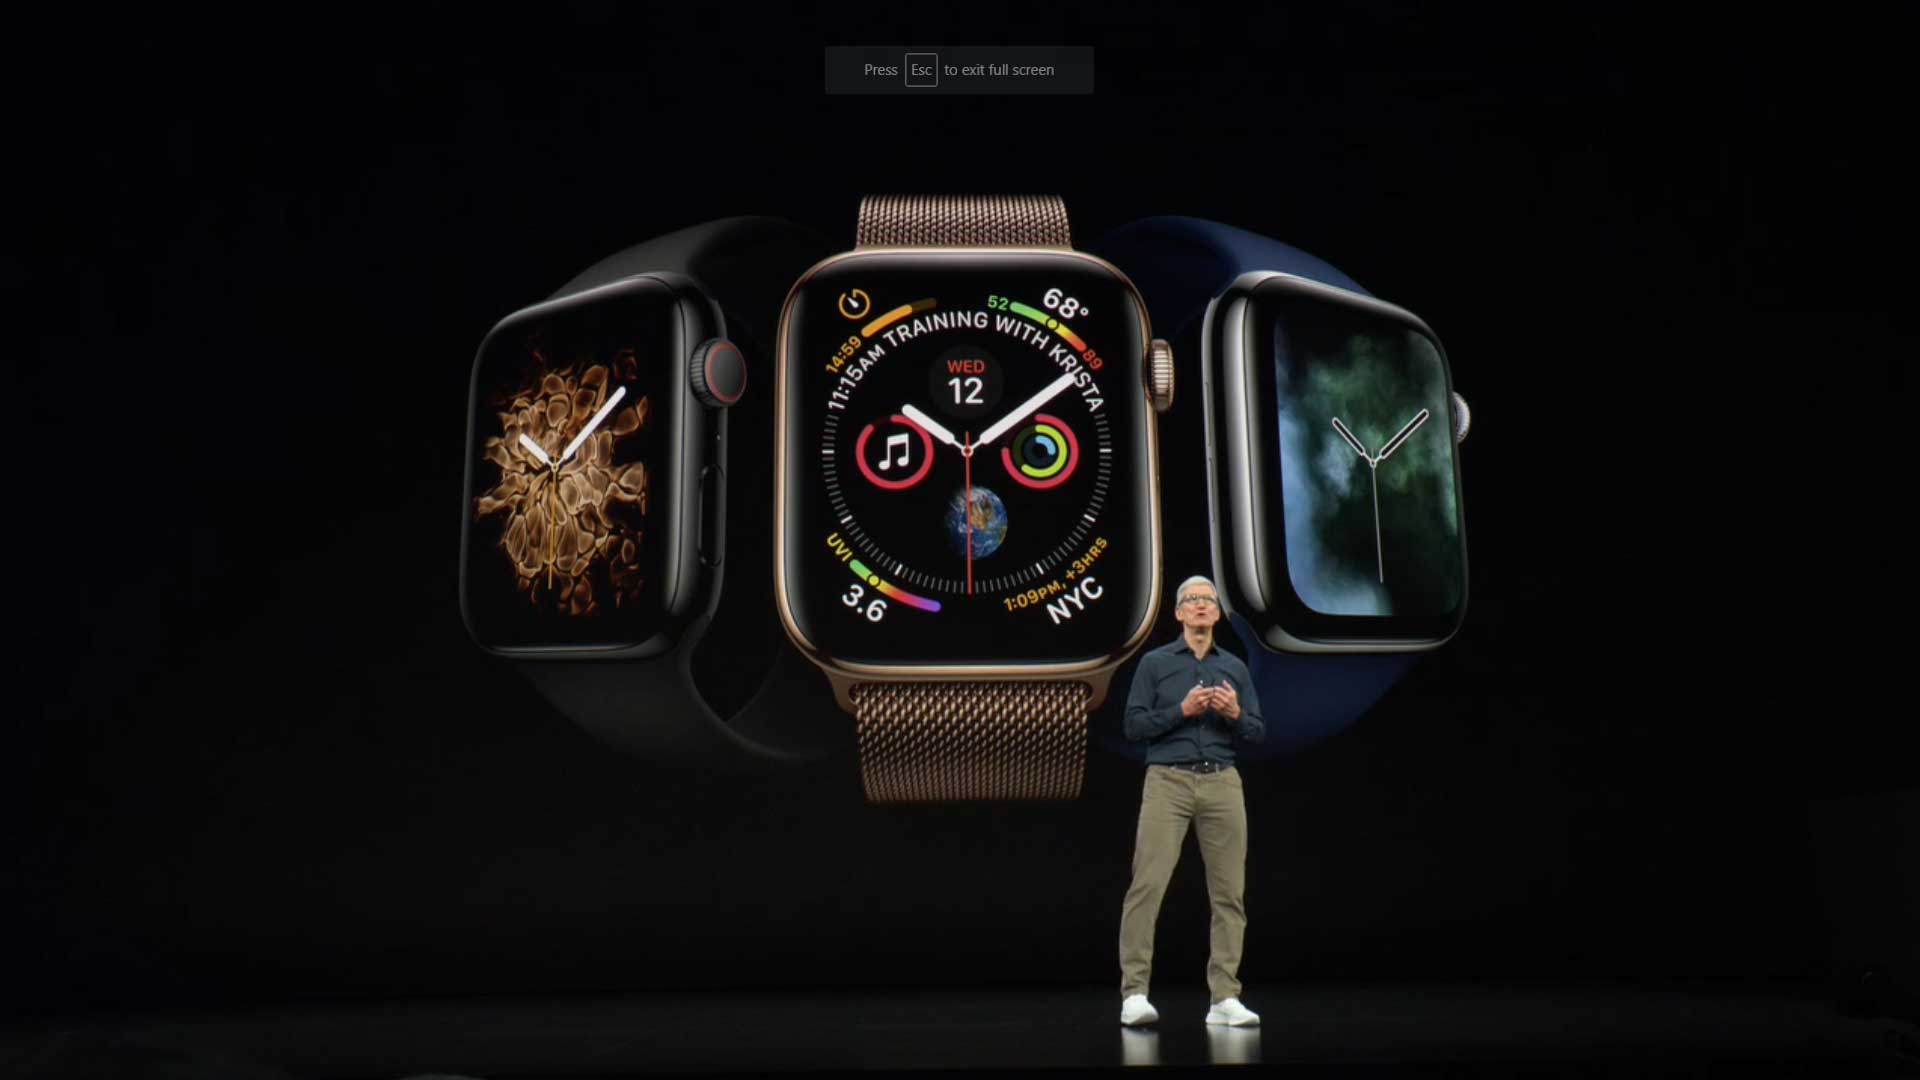 Apple Wows At Unveiling Of Series 4 Watch And Iphone Xs Max Largest Fpga 68 Billion Transistors Timcook6